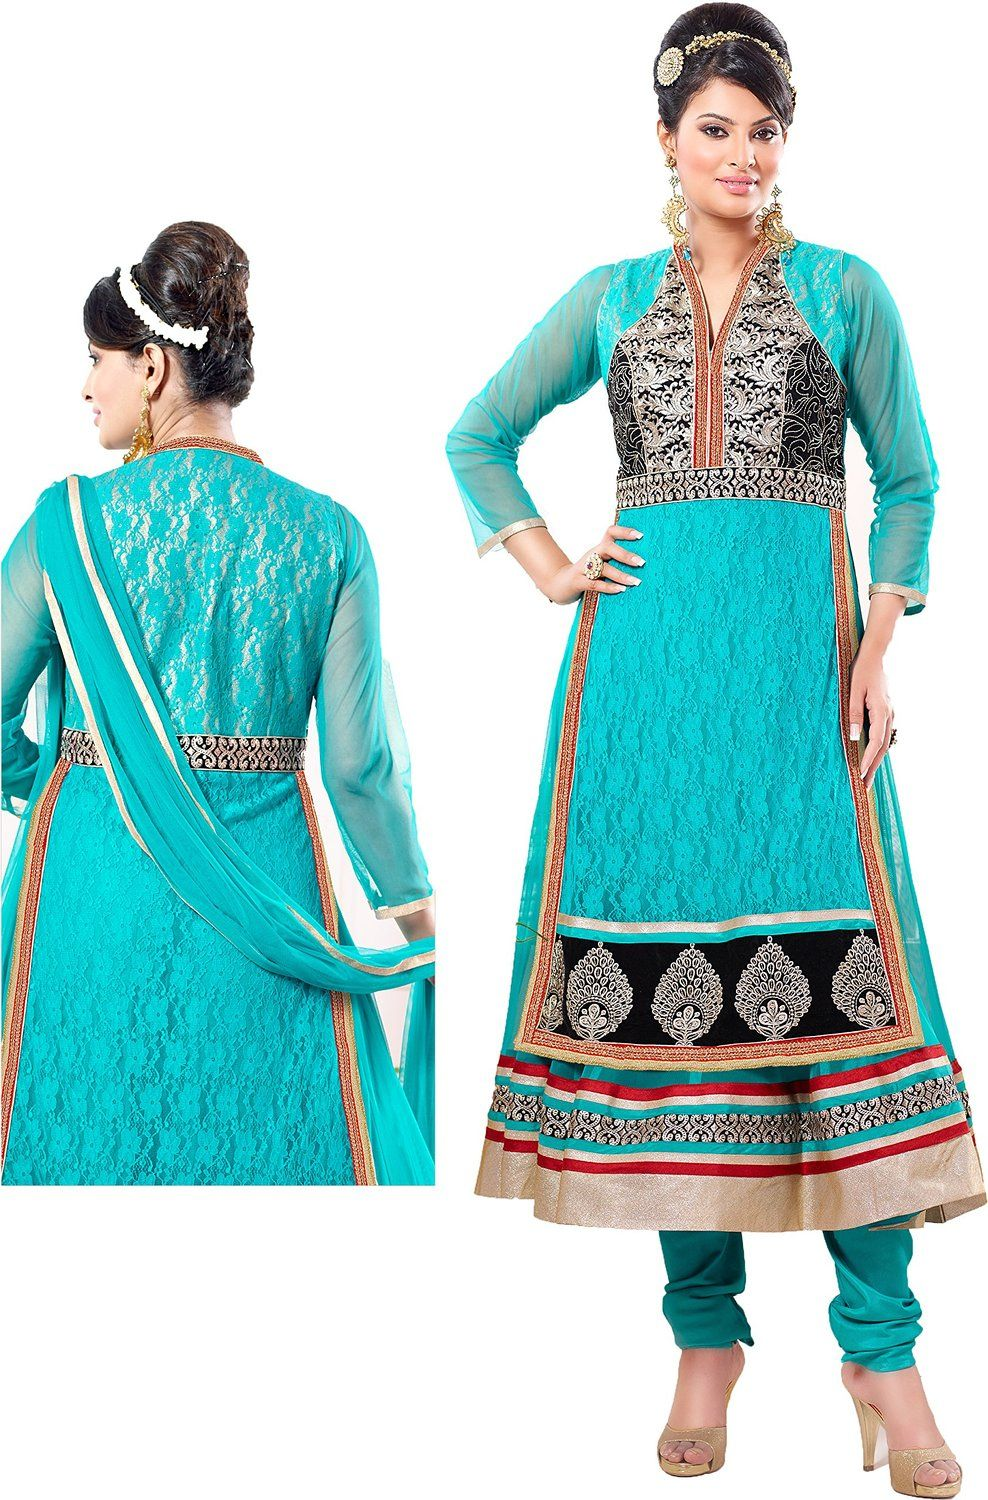 chakudee by blue net drees material: Amazon.in: Clothing ...